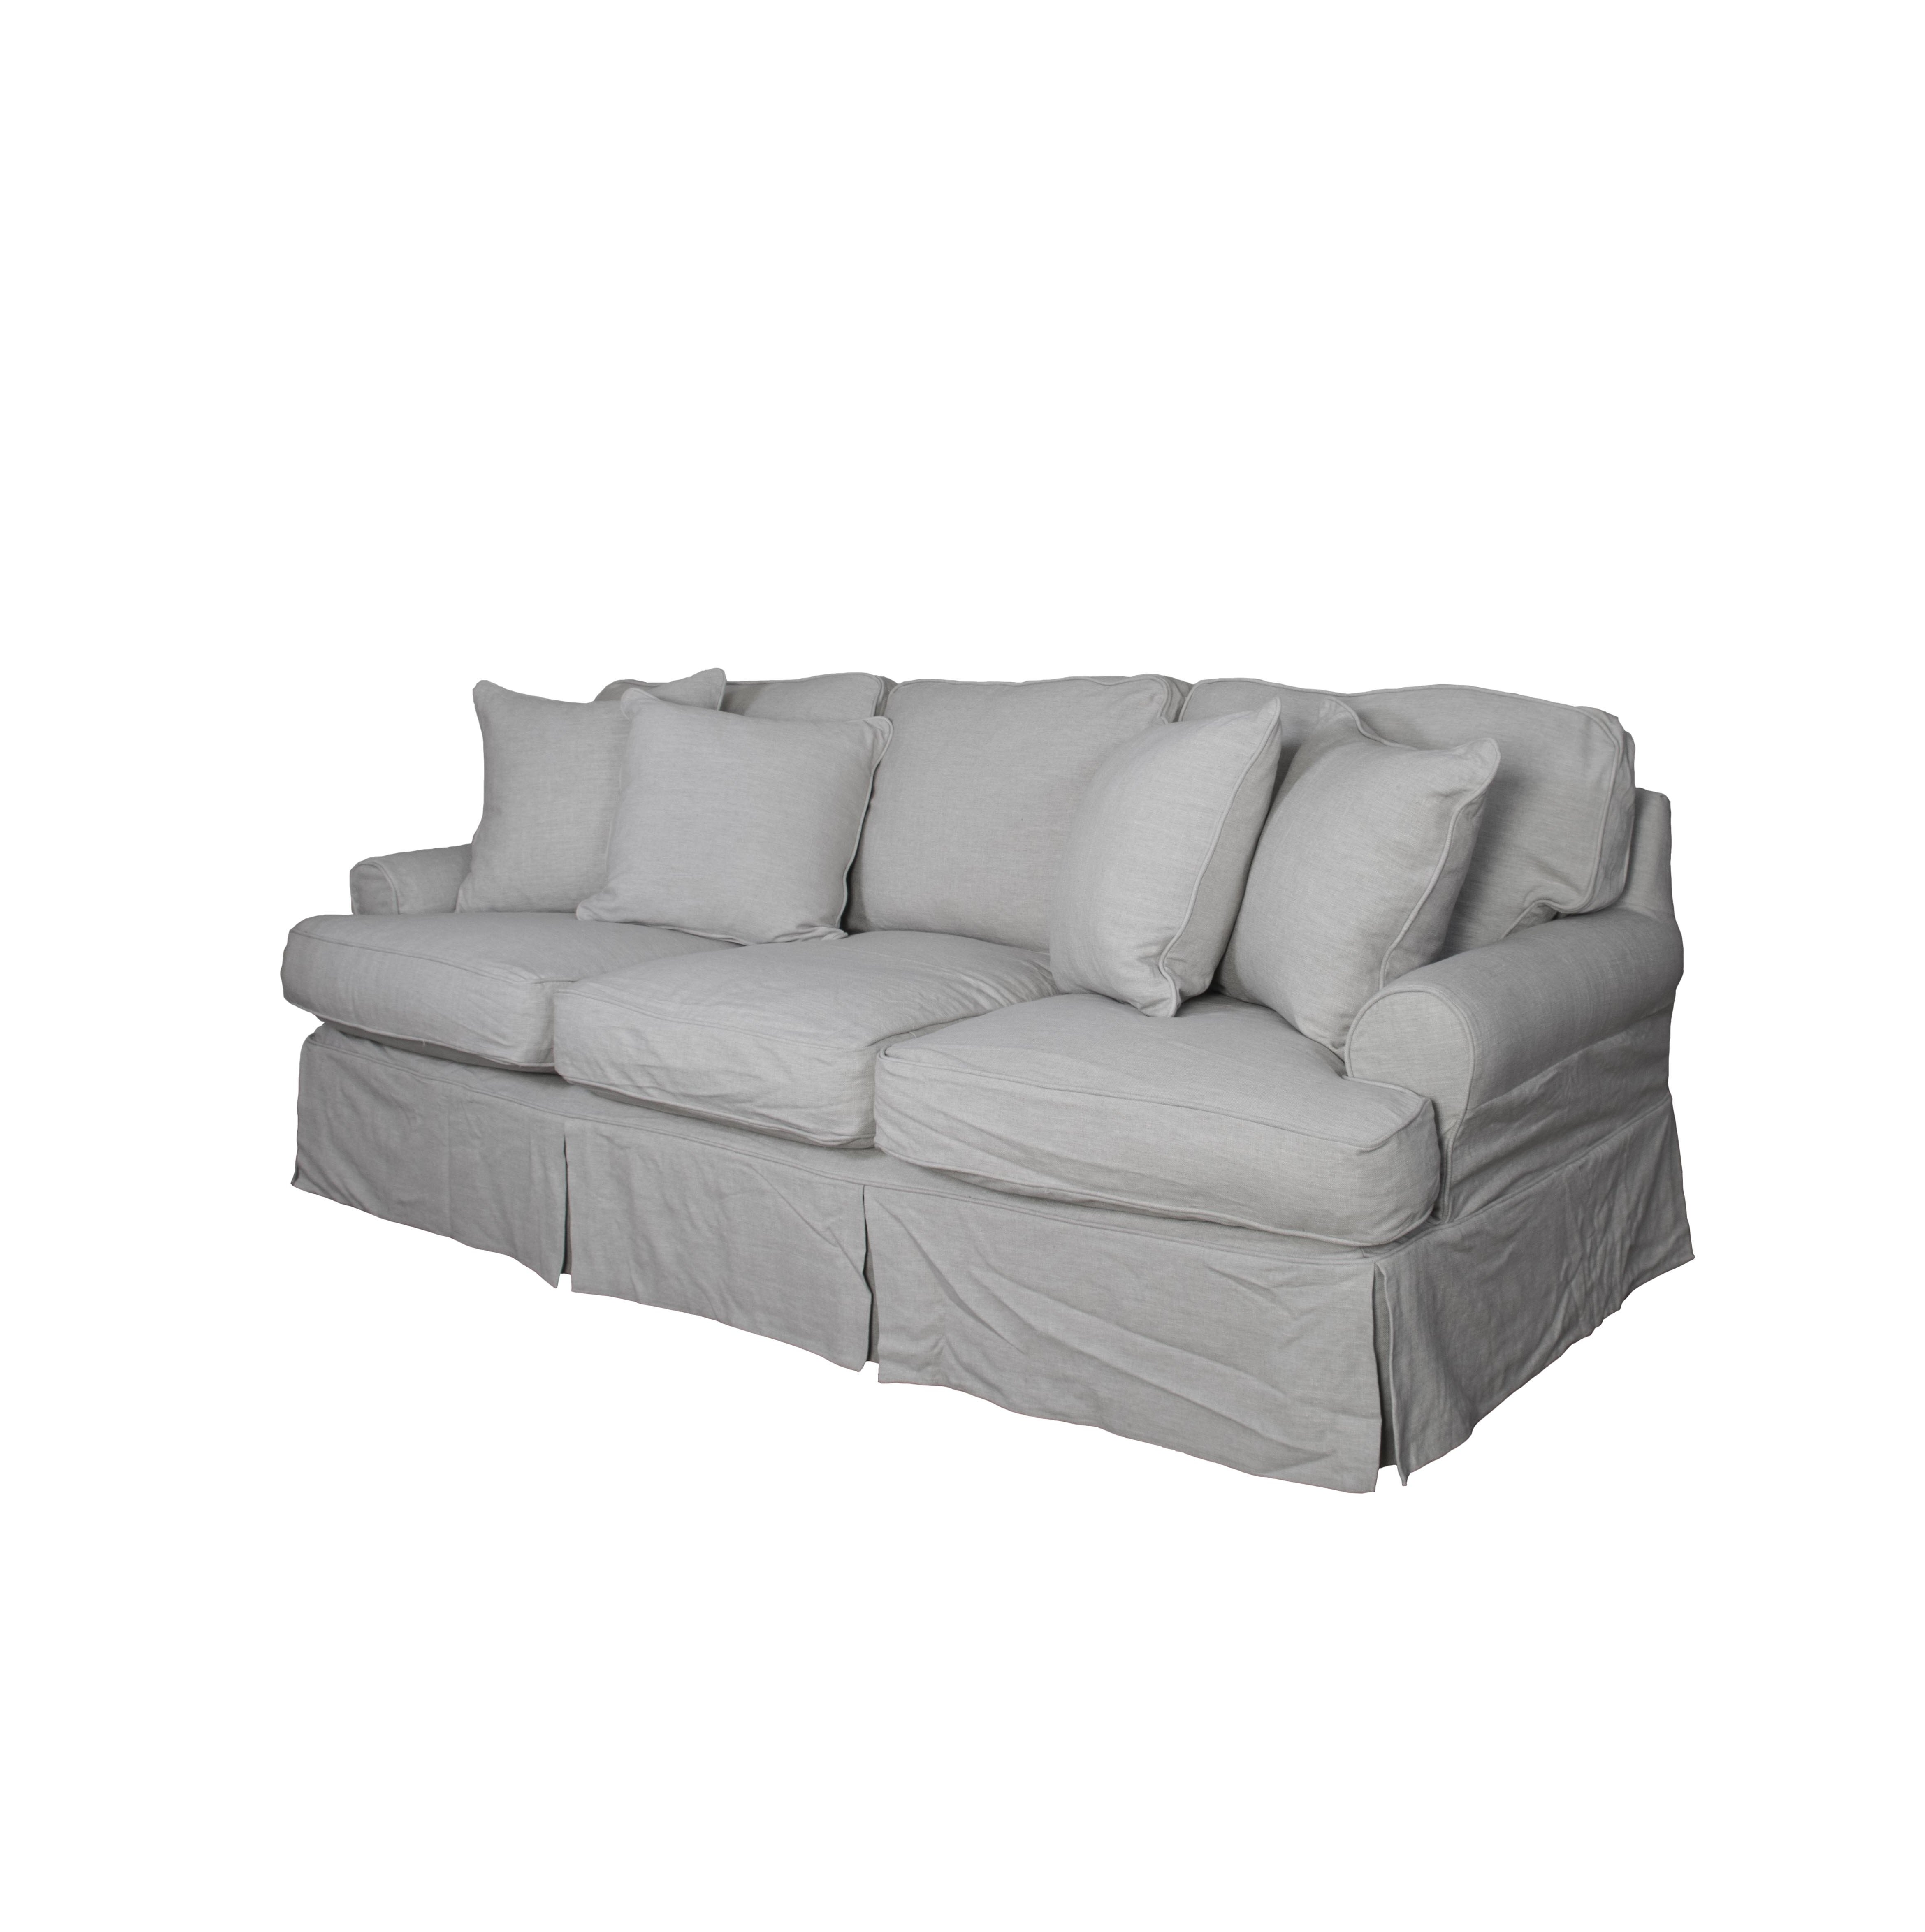 slipcovers t tv slipcover for cushion sofas with